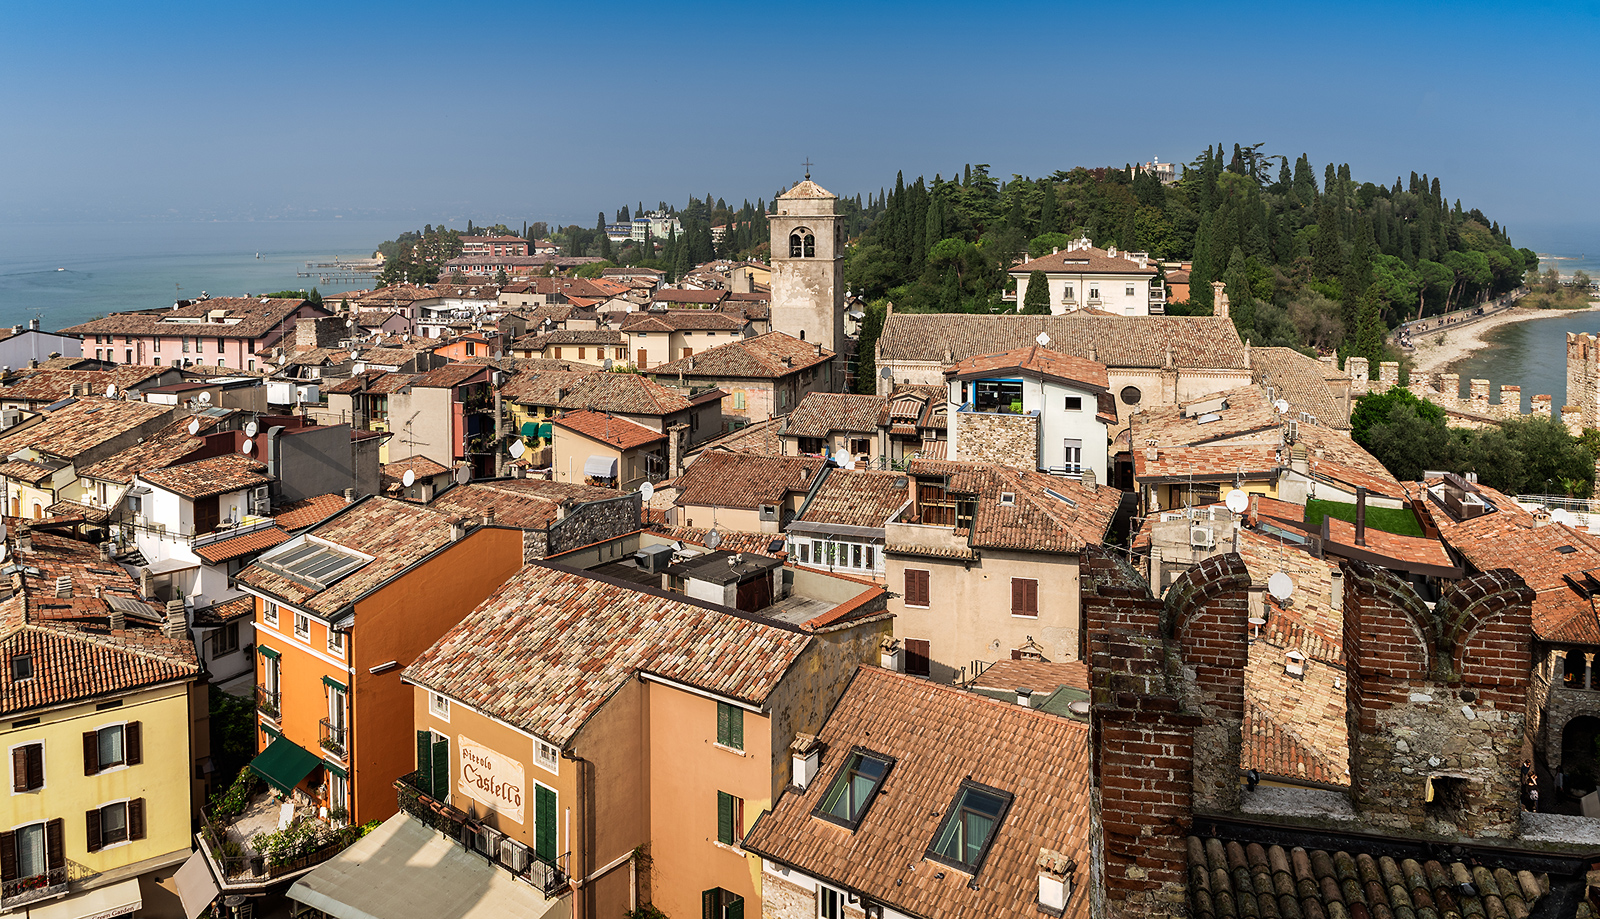 Rooftops-of-Sirmione